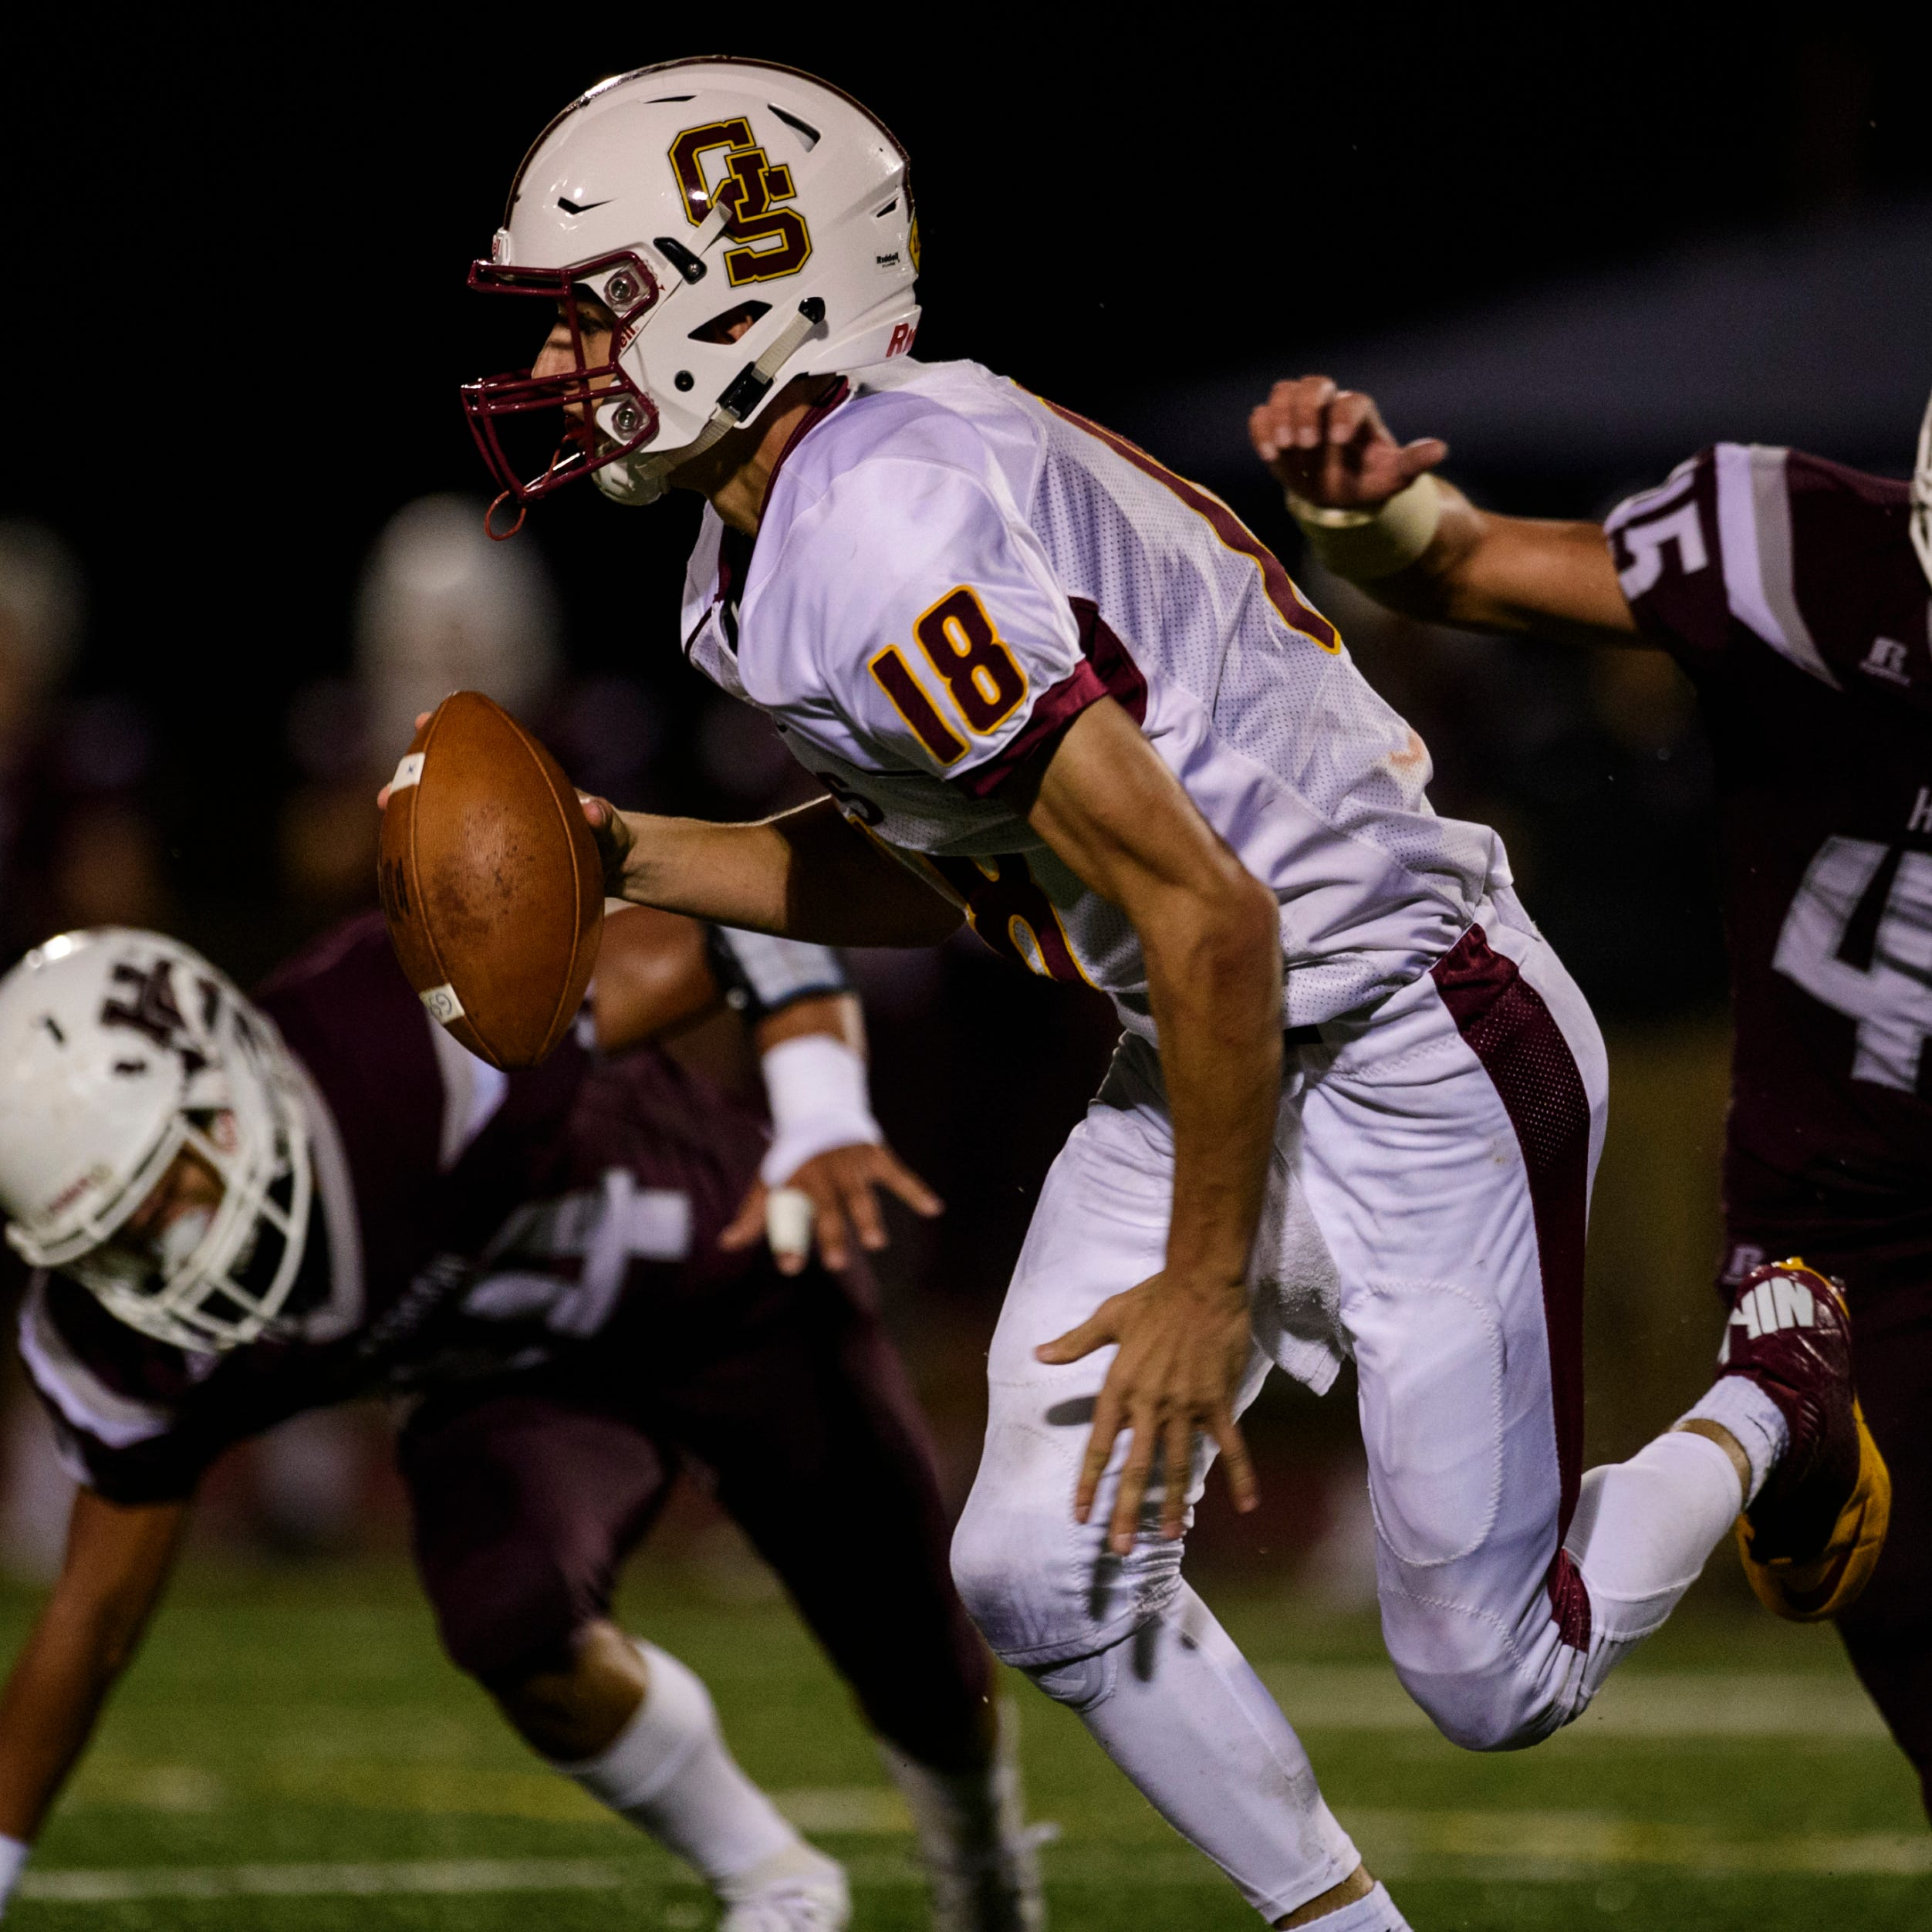 Gibson Southern quarterback Brady Allen staying even-keeled amid the hype and buzz